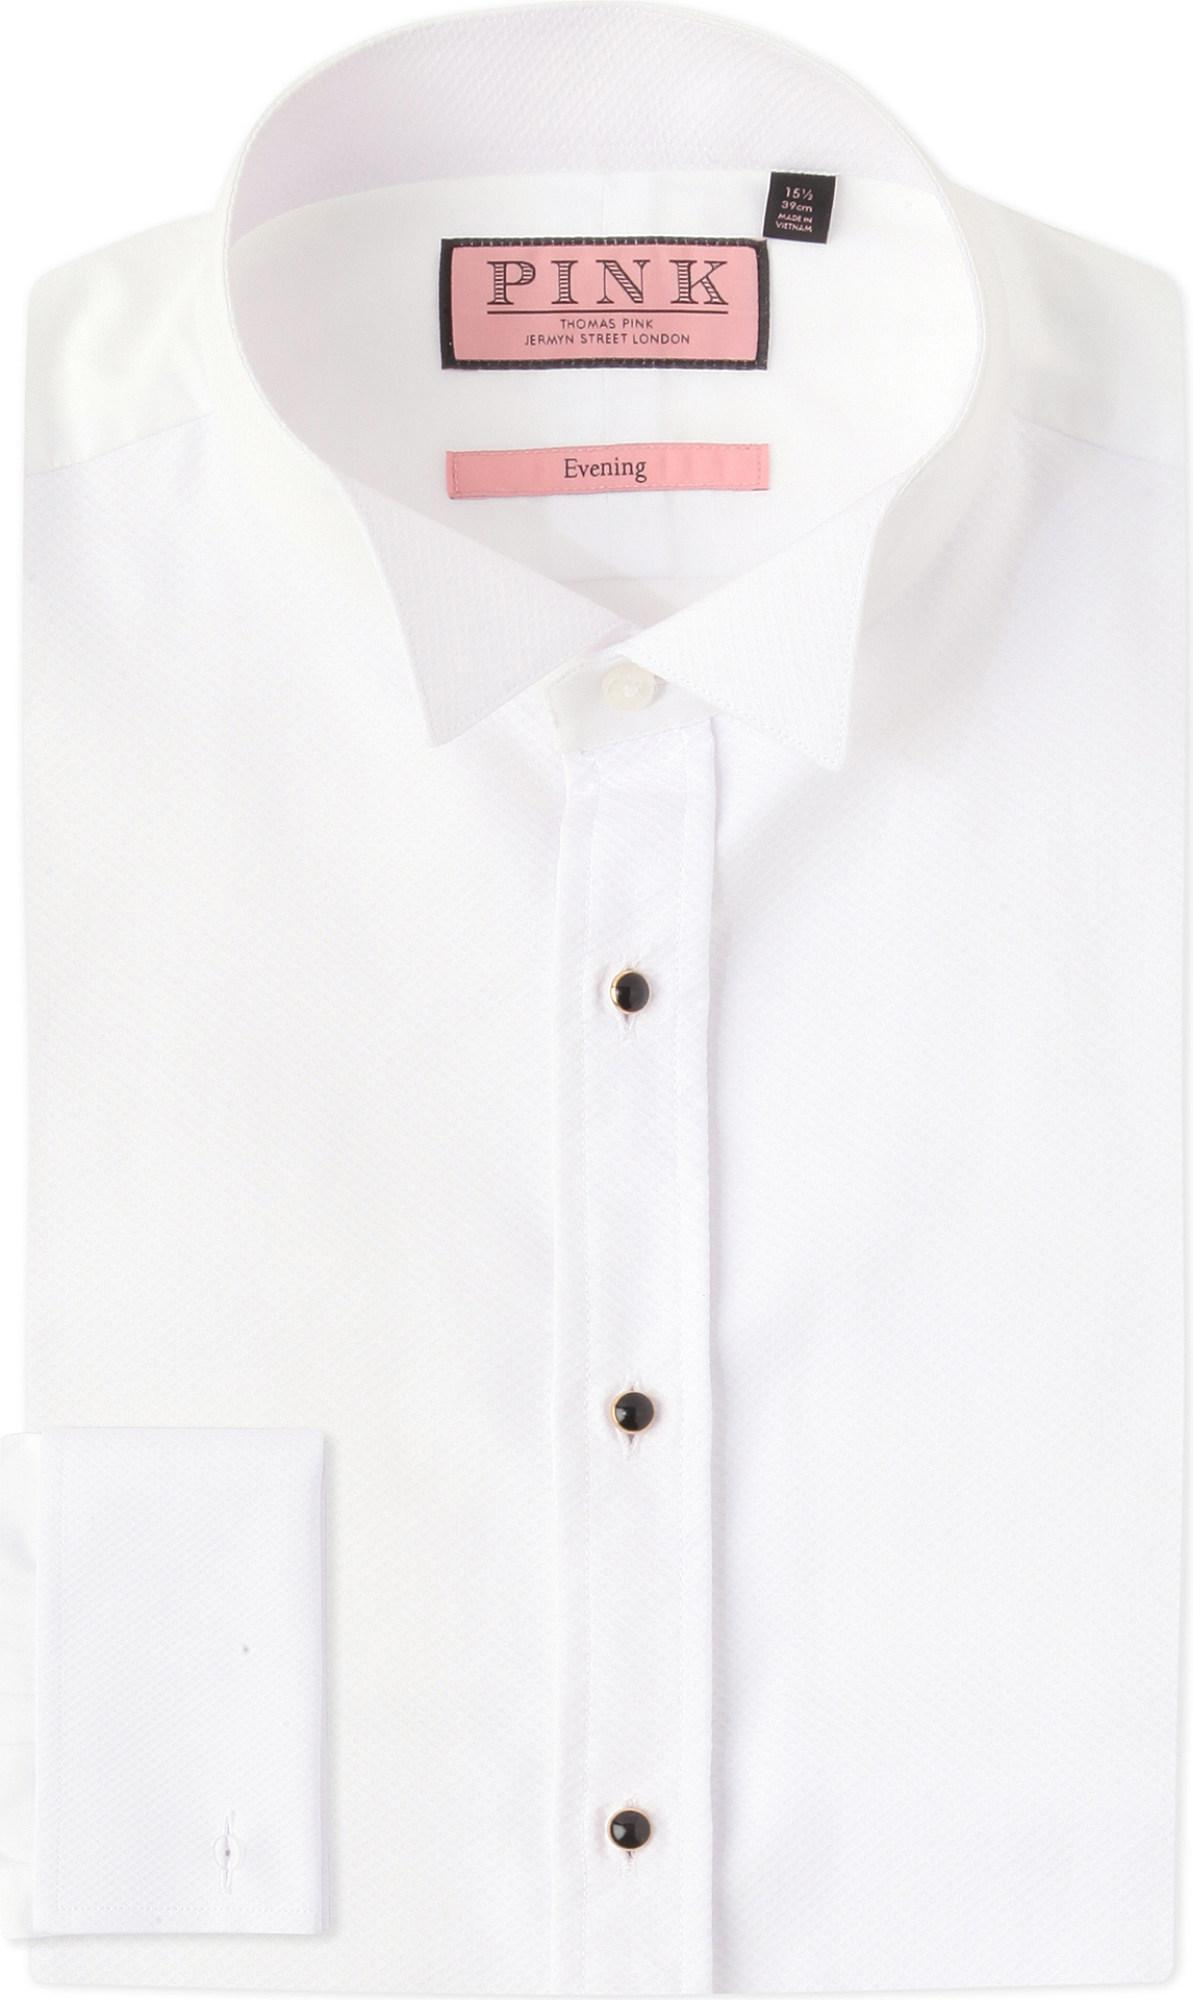 Lyst Thomas Pink Marcella Evening Wing Collar Slim Fit Cotton